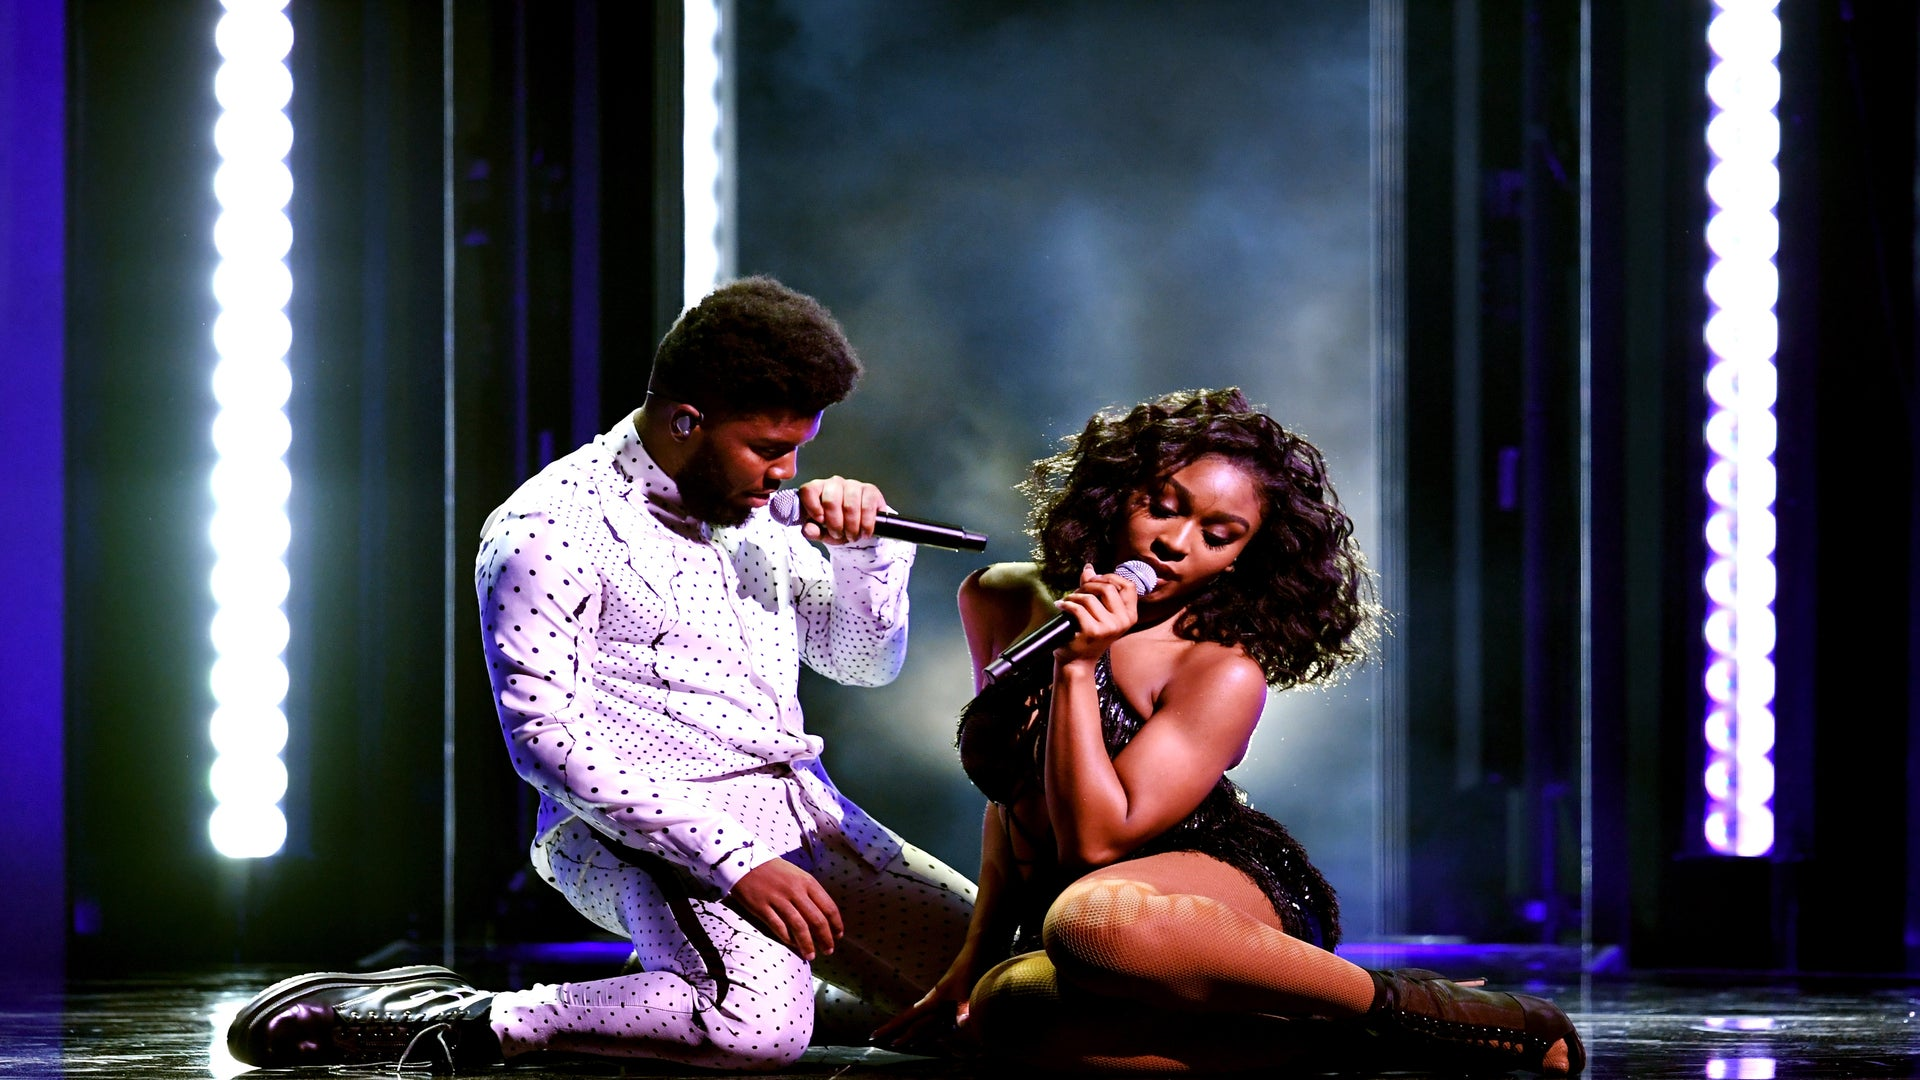 WATCH: Khalid And Normani Light Up The Billboard Awards Stage With A Performance Of Their Hit Single, 'Love Lies'